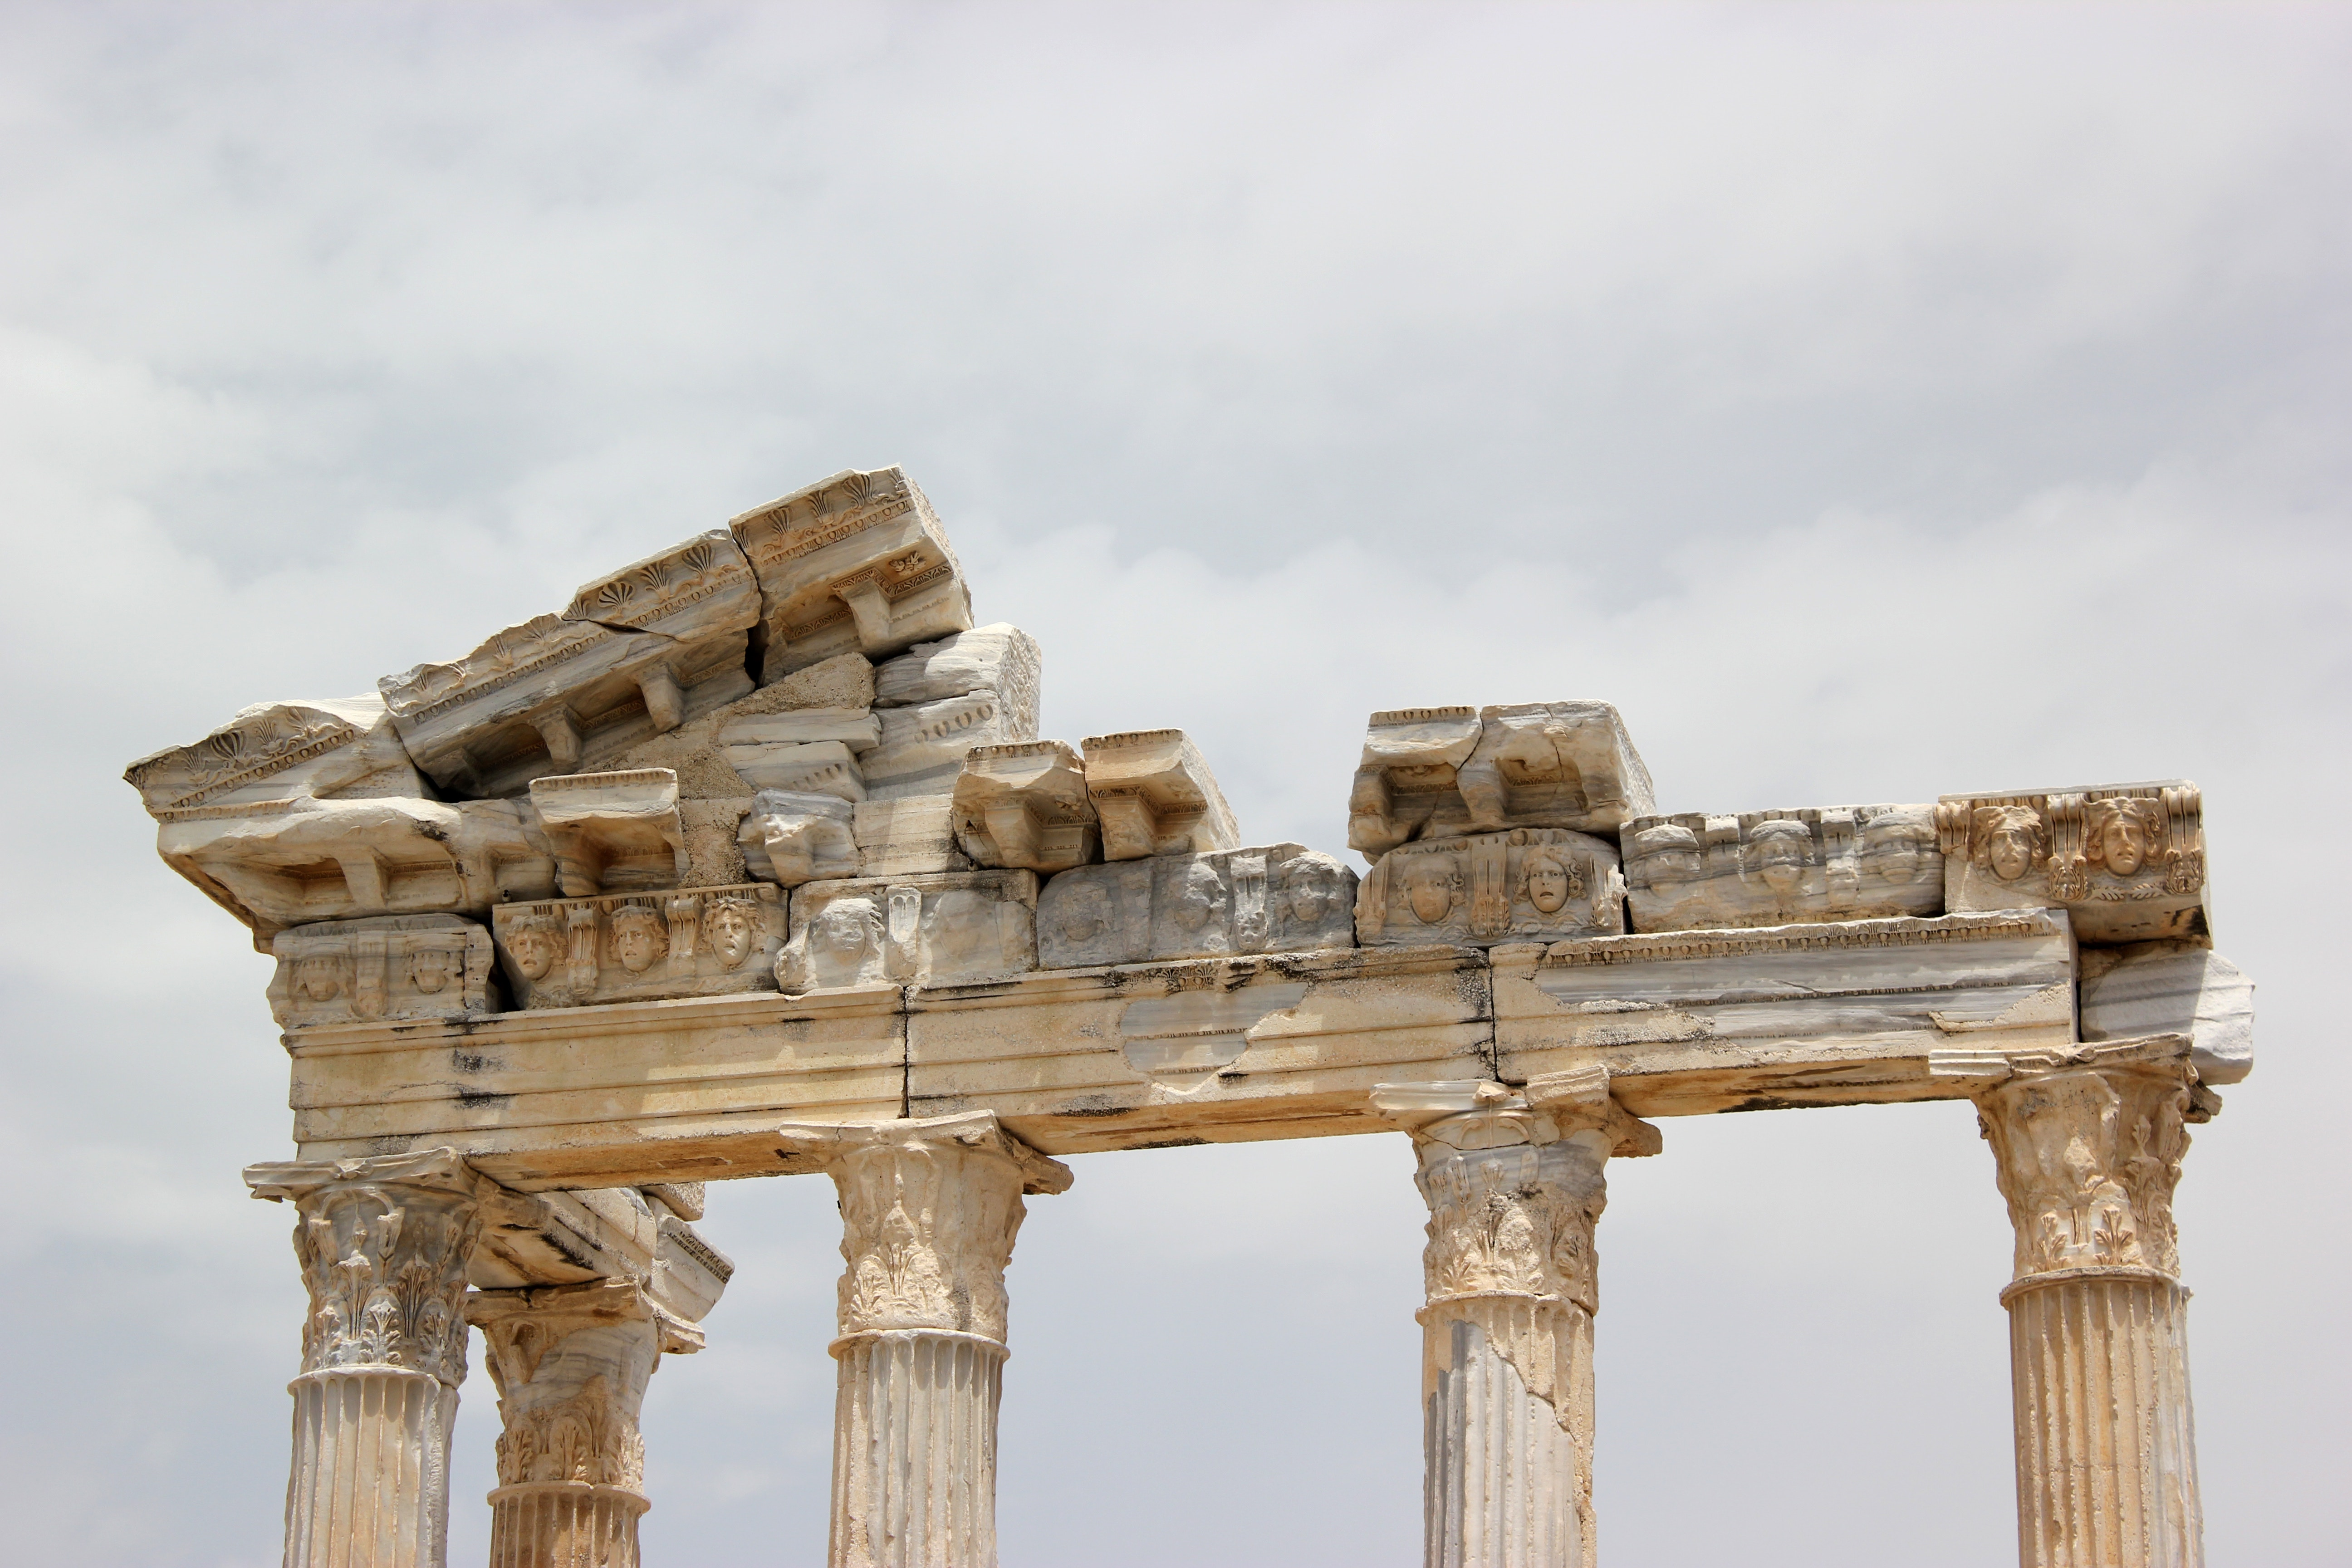 Learning leadership lessons from Alexander the Great